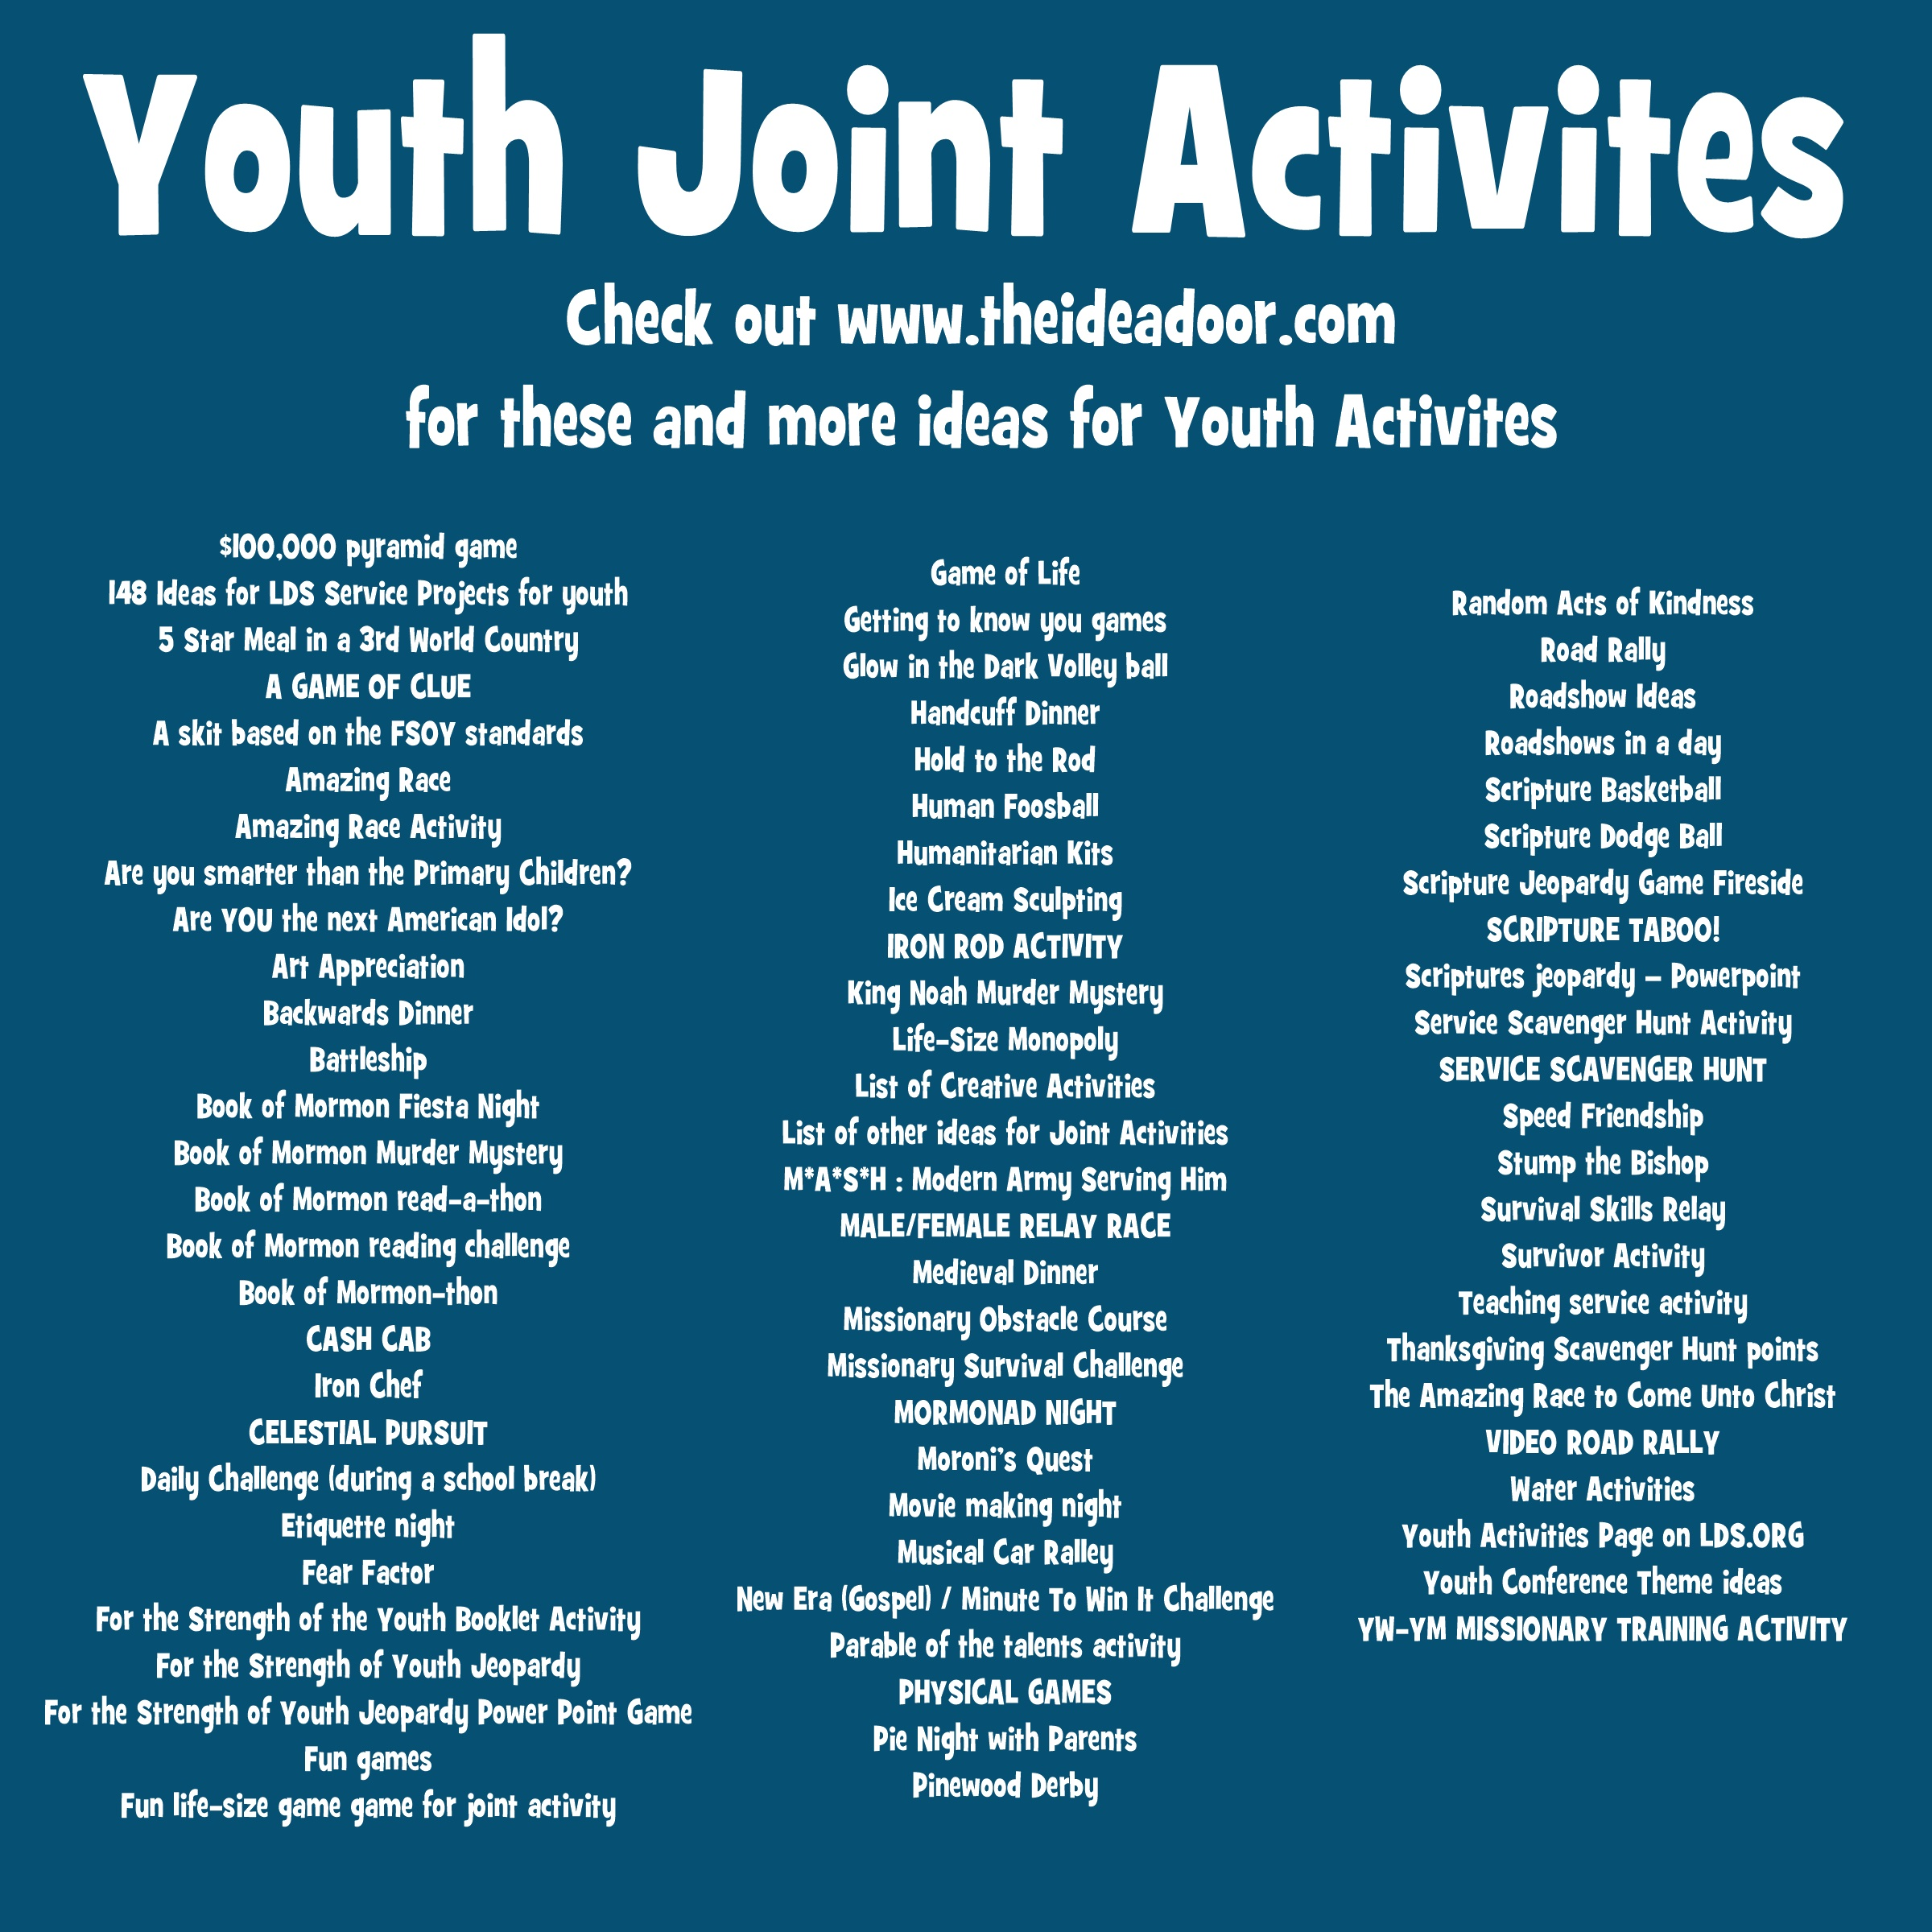 Youth Ministry Calendar Ideas : Youth joint activities the idea door